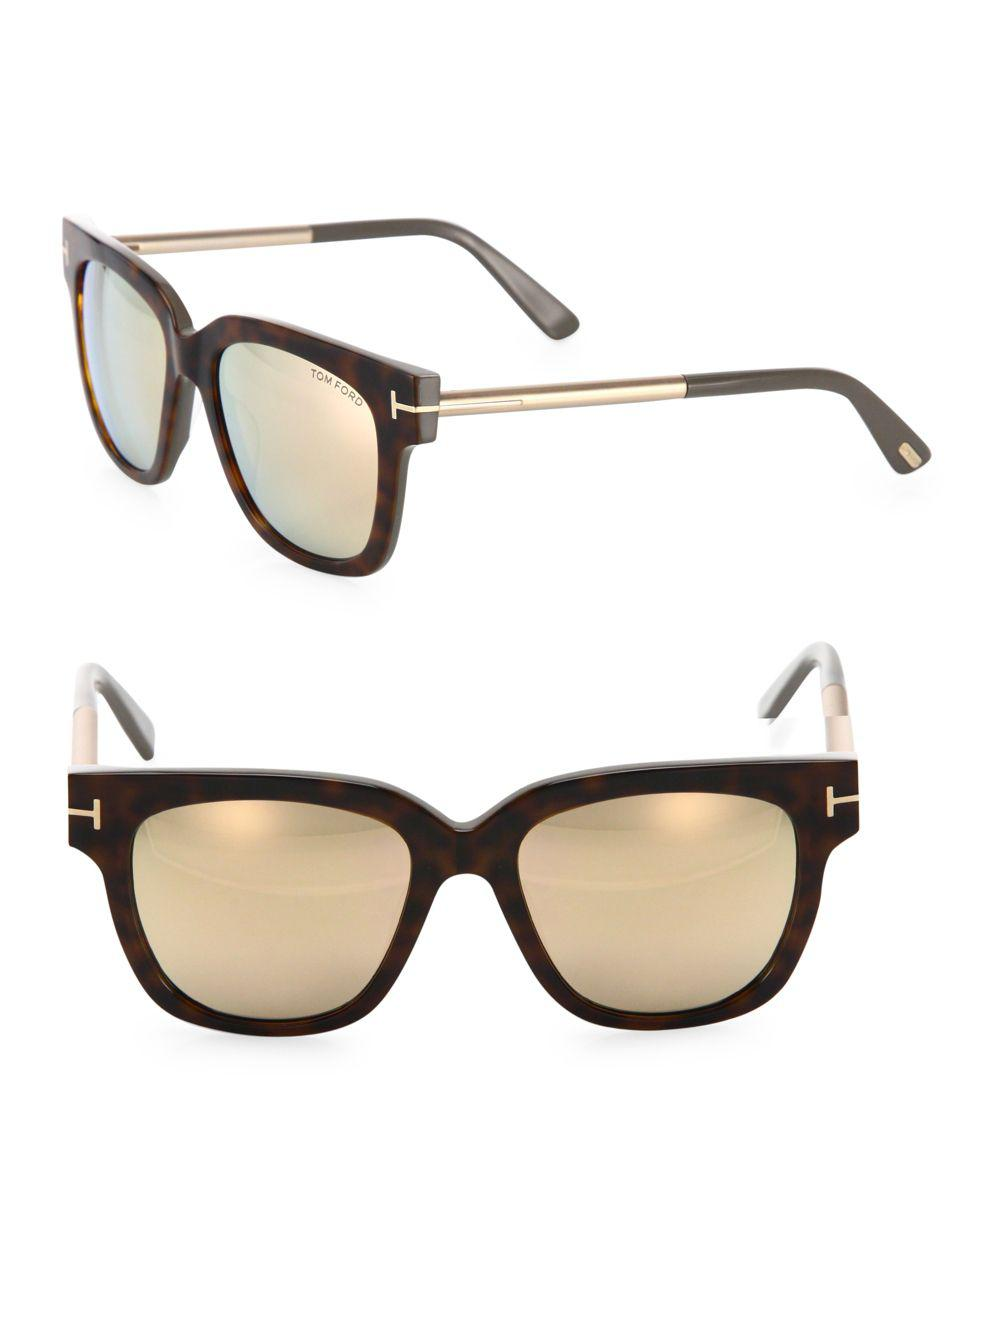 8b55b256278 Lyst - Tom Ford Tracy 53mm Mirrored Soft Square Sunglasses in Brown